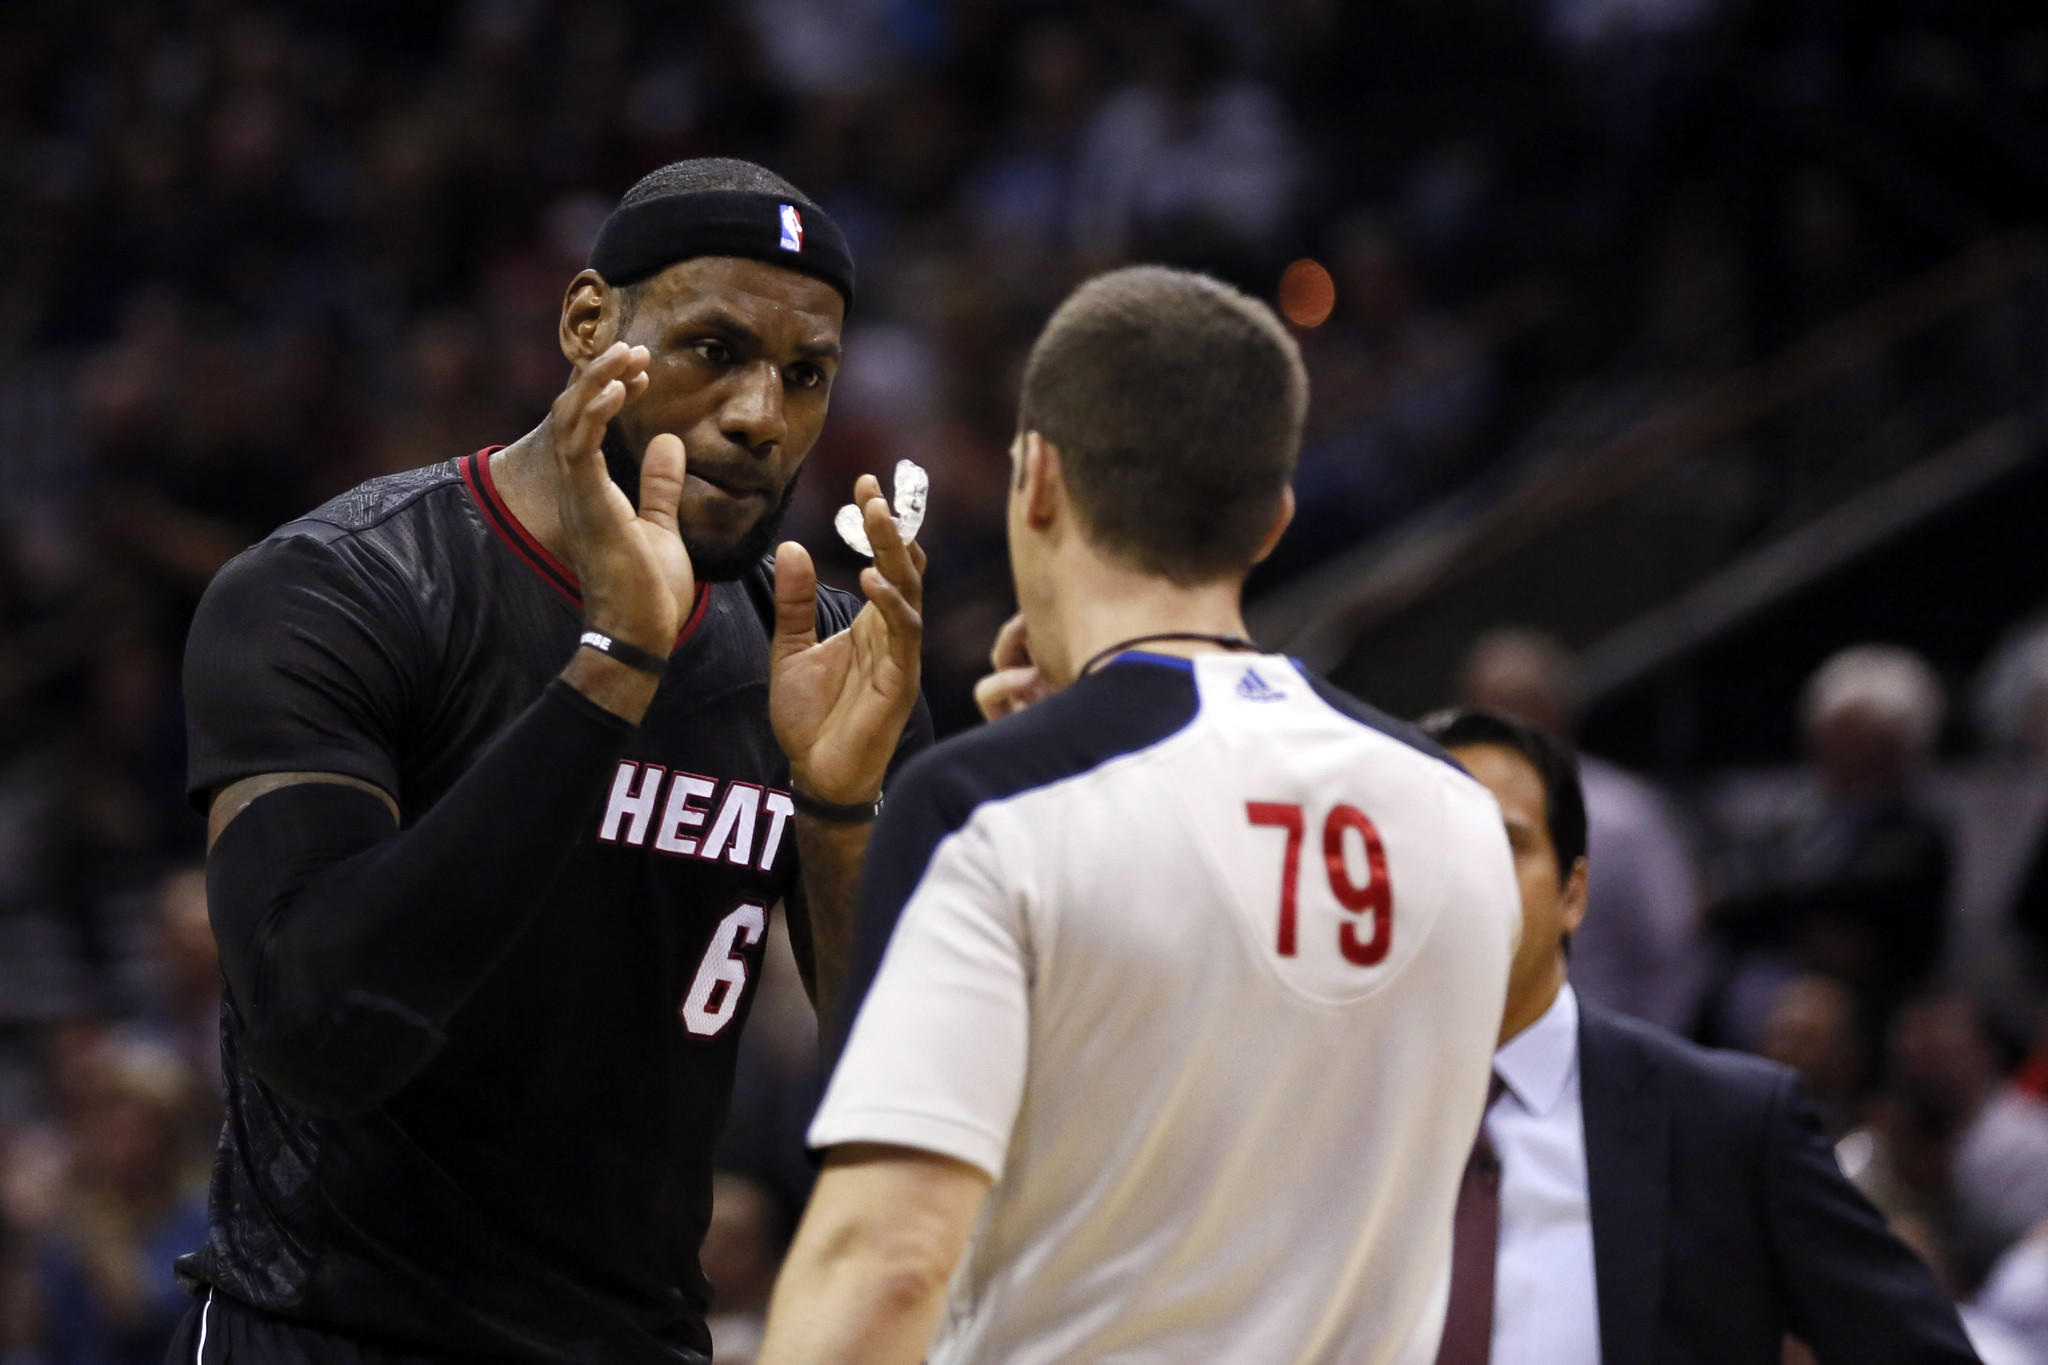 Mar 6, 2014; San Antonio, TX, USA; Miami Heat forward LeBron James (6) argues a call with referee Kevin Scott during the first half against the San Antonio Spurs at AT&T Center. Mandatory Credit: Soobum Im-USA TODAY Sports ORG XMIT: USATSI-141304